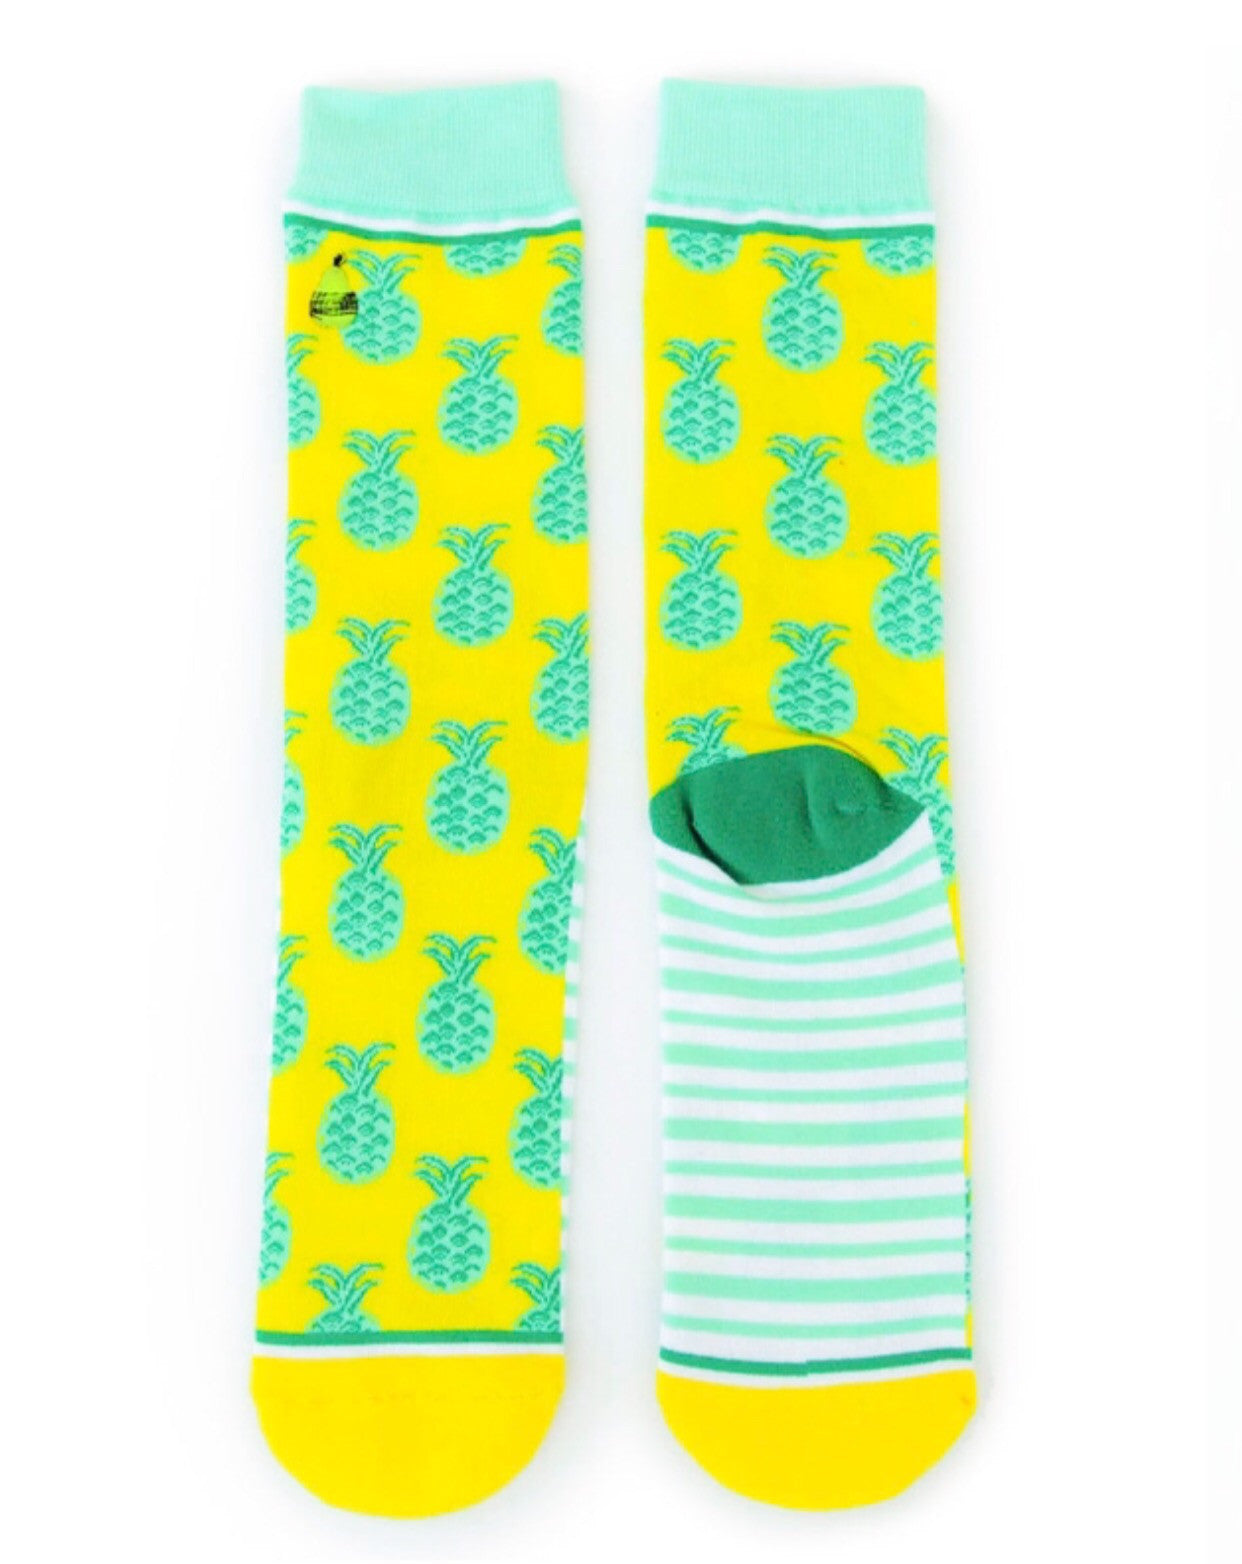 Socks: Pineapple Whip